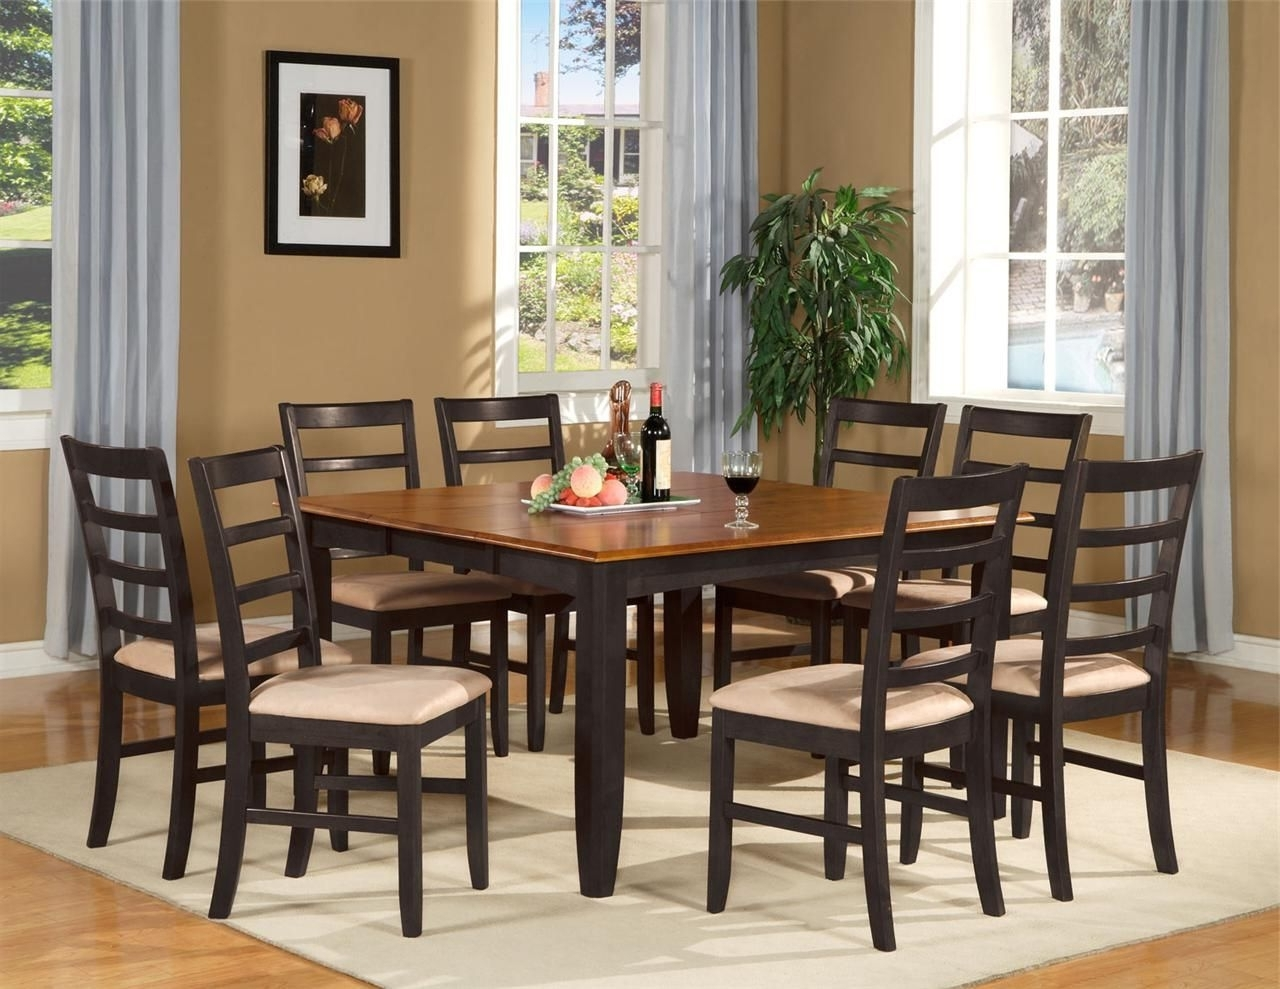 Trendy Dining Table Designs For A Stylish Dining Room – Home Decor Ideas Throughout Preferred Dining Tables 8 Chairs Set (View 22 of 25)